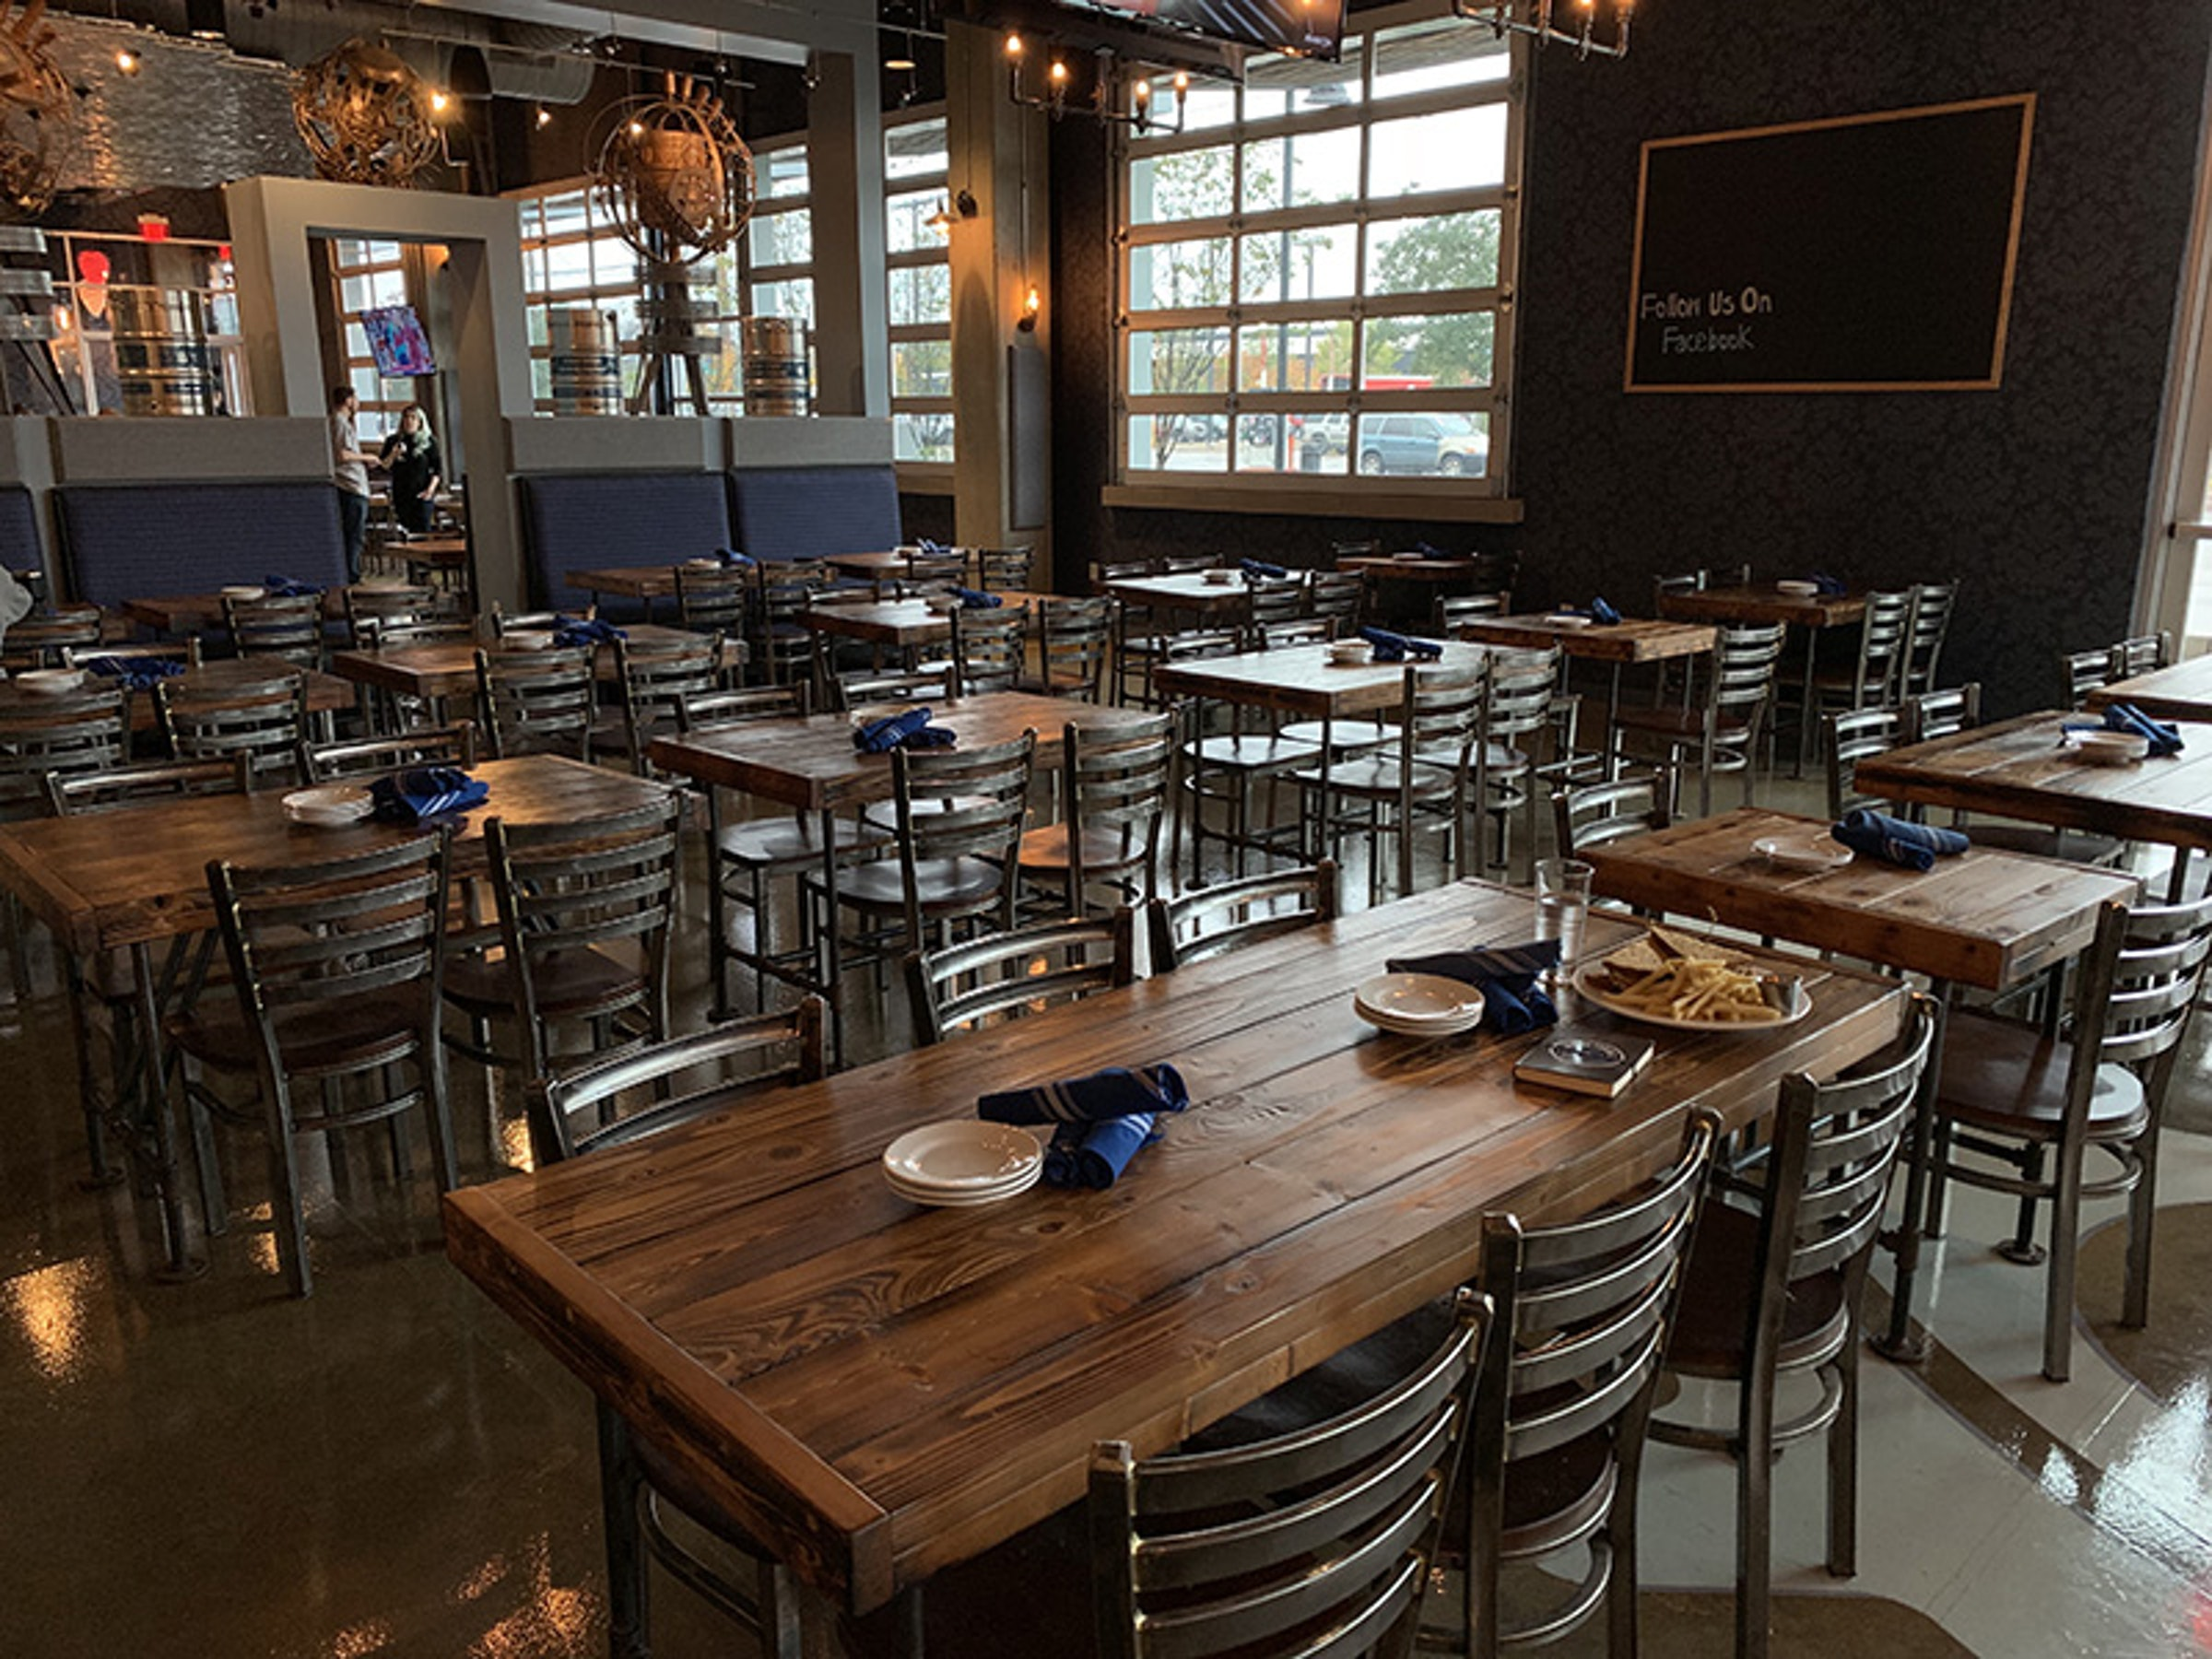 Steam Theory Brewing Company in Beyond Dallas